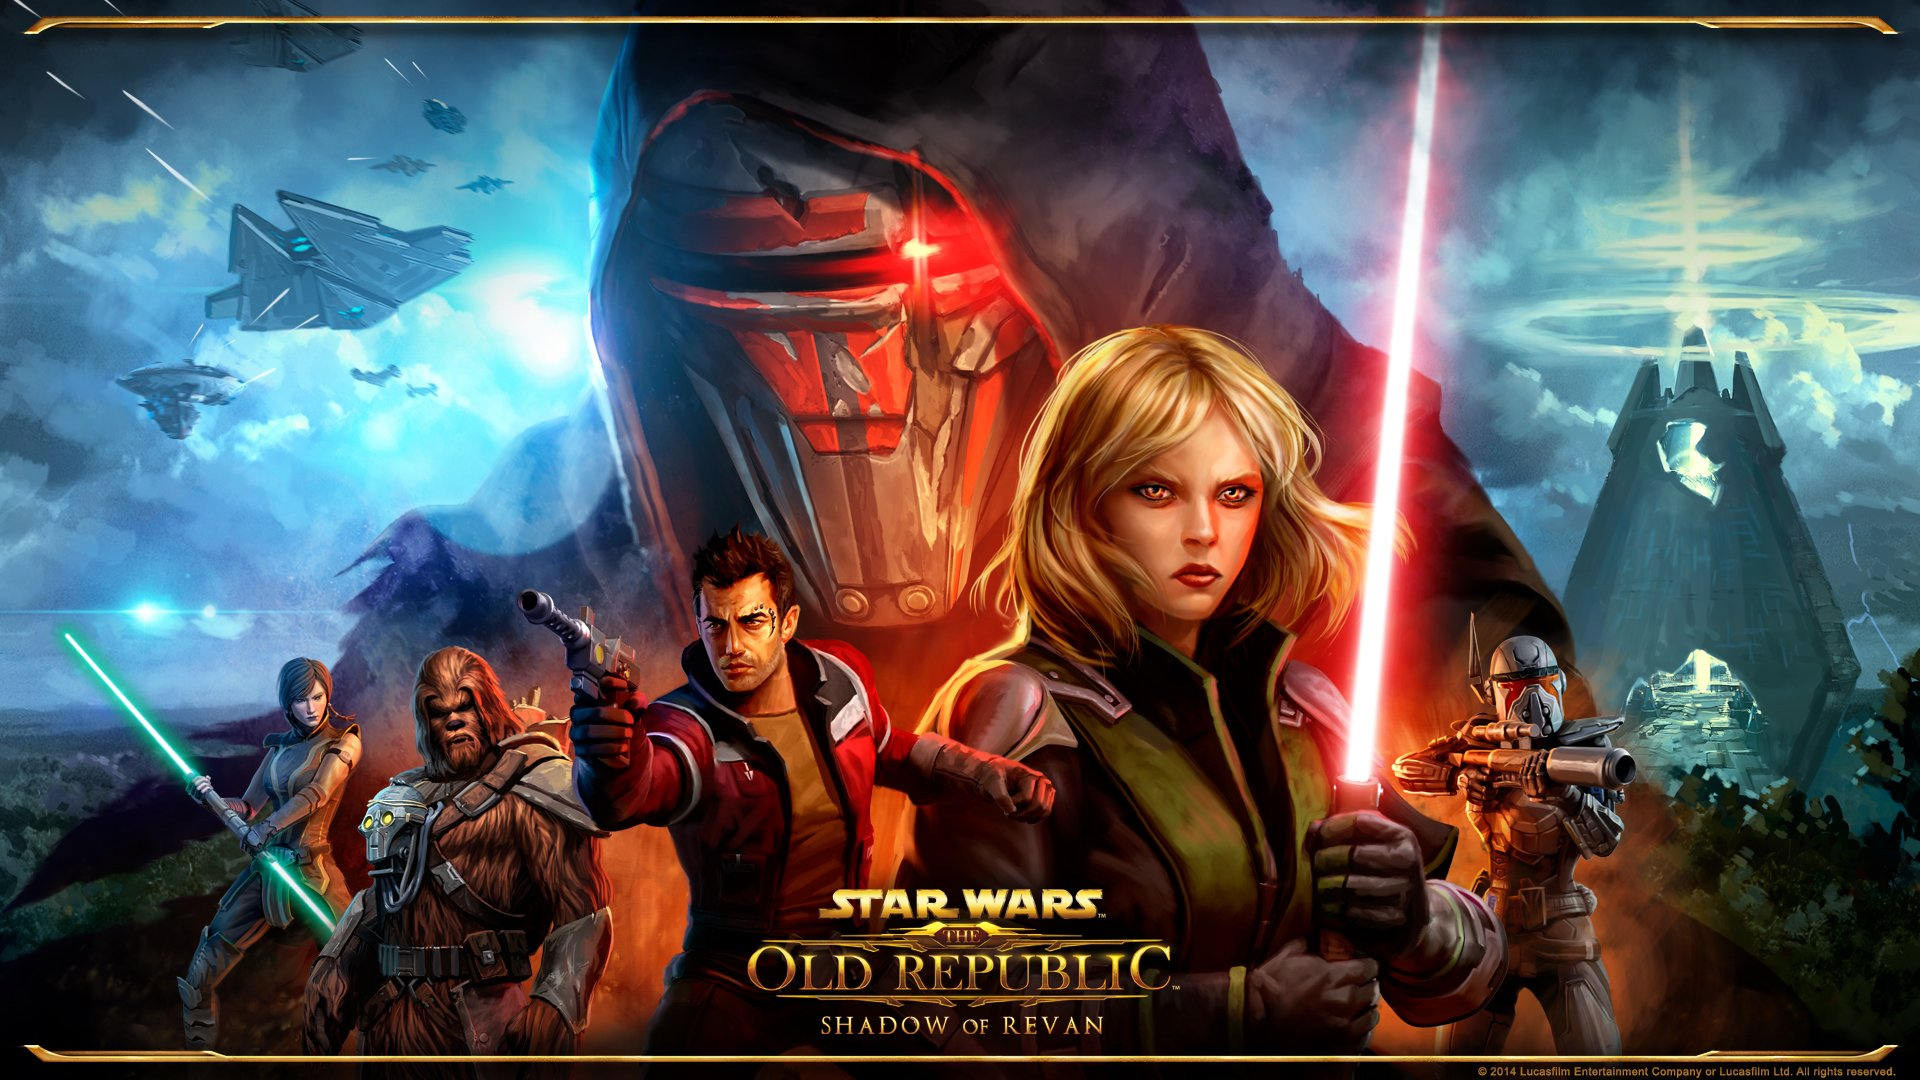 The Old Republic on Twitter: